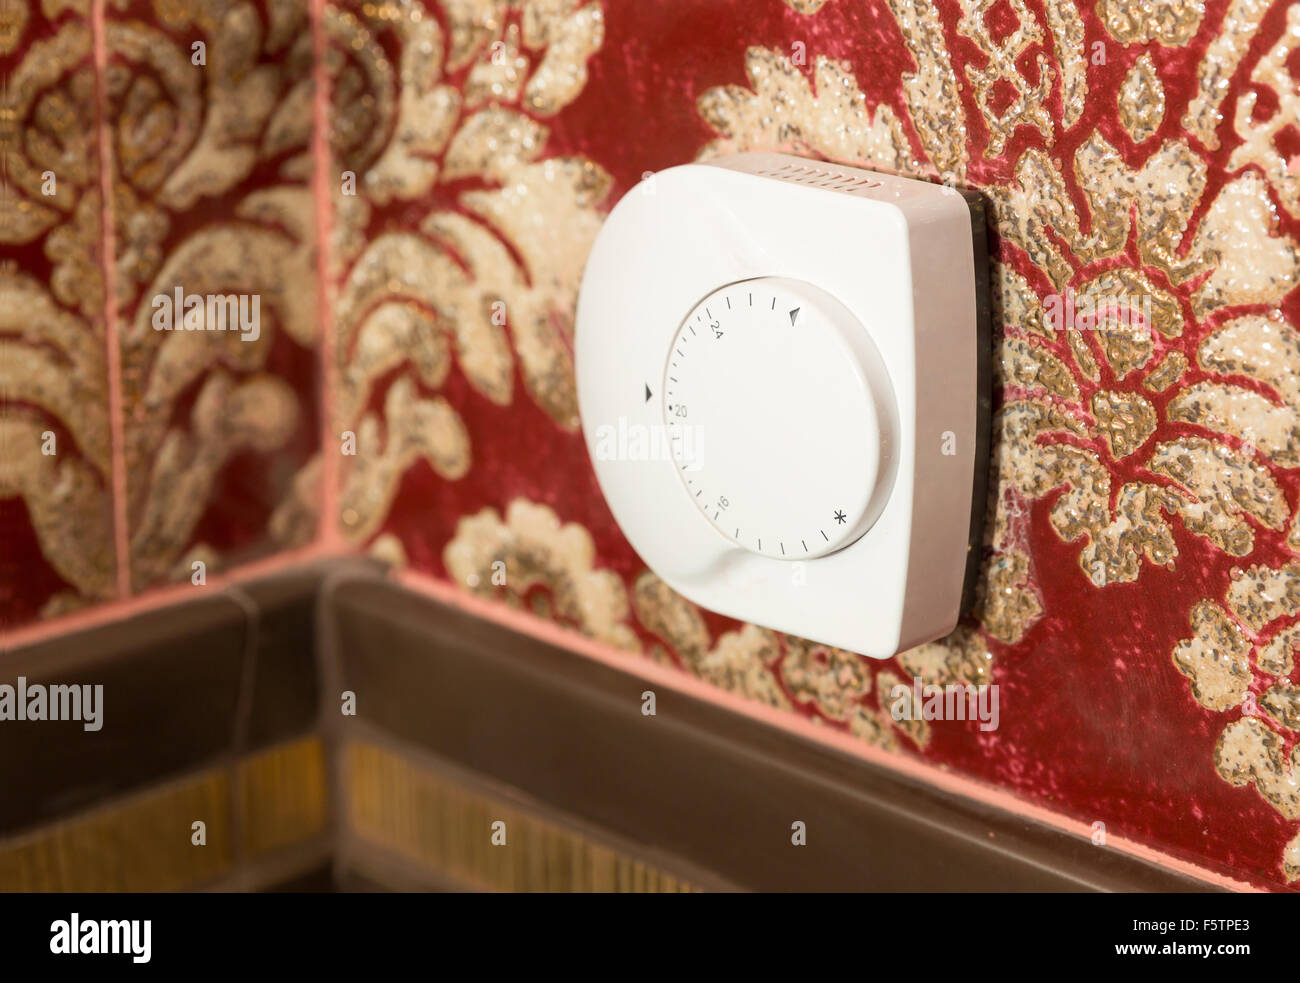 Temperature control on the wall indoors - Stock Image